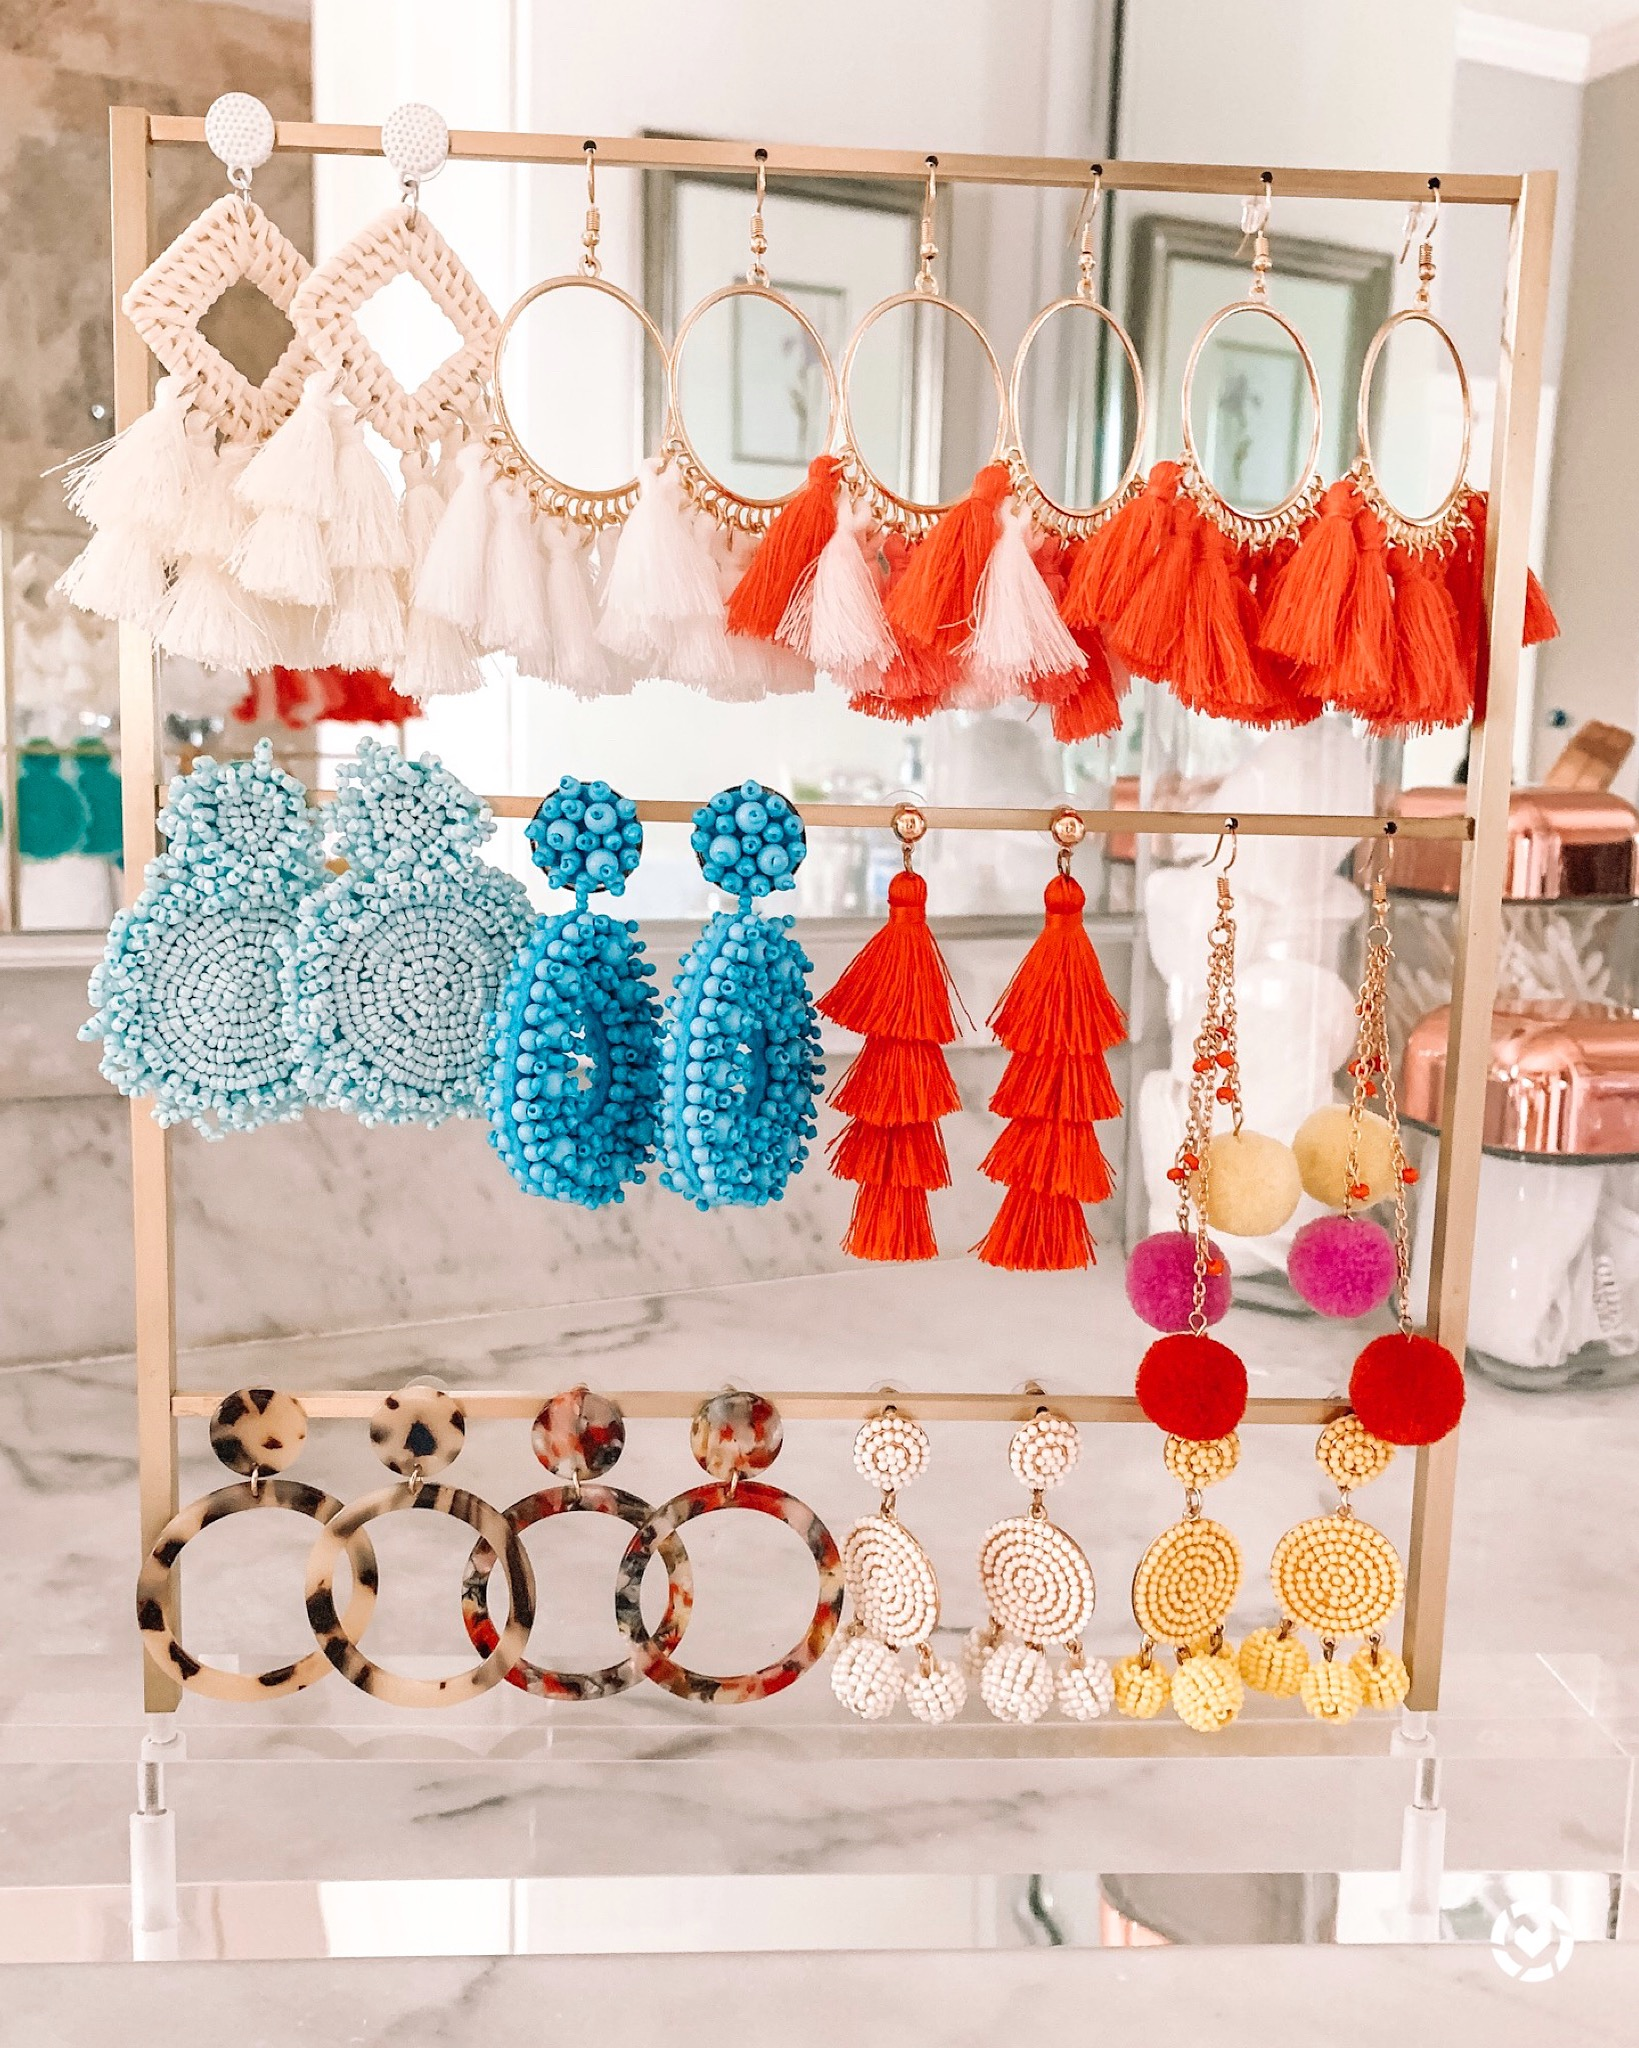 Kendra Scott Earring Ladder and statement earrings